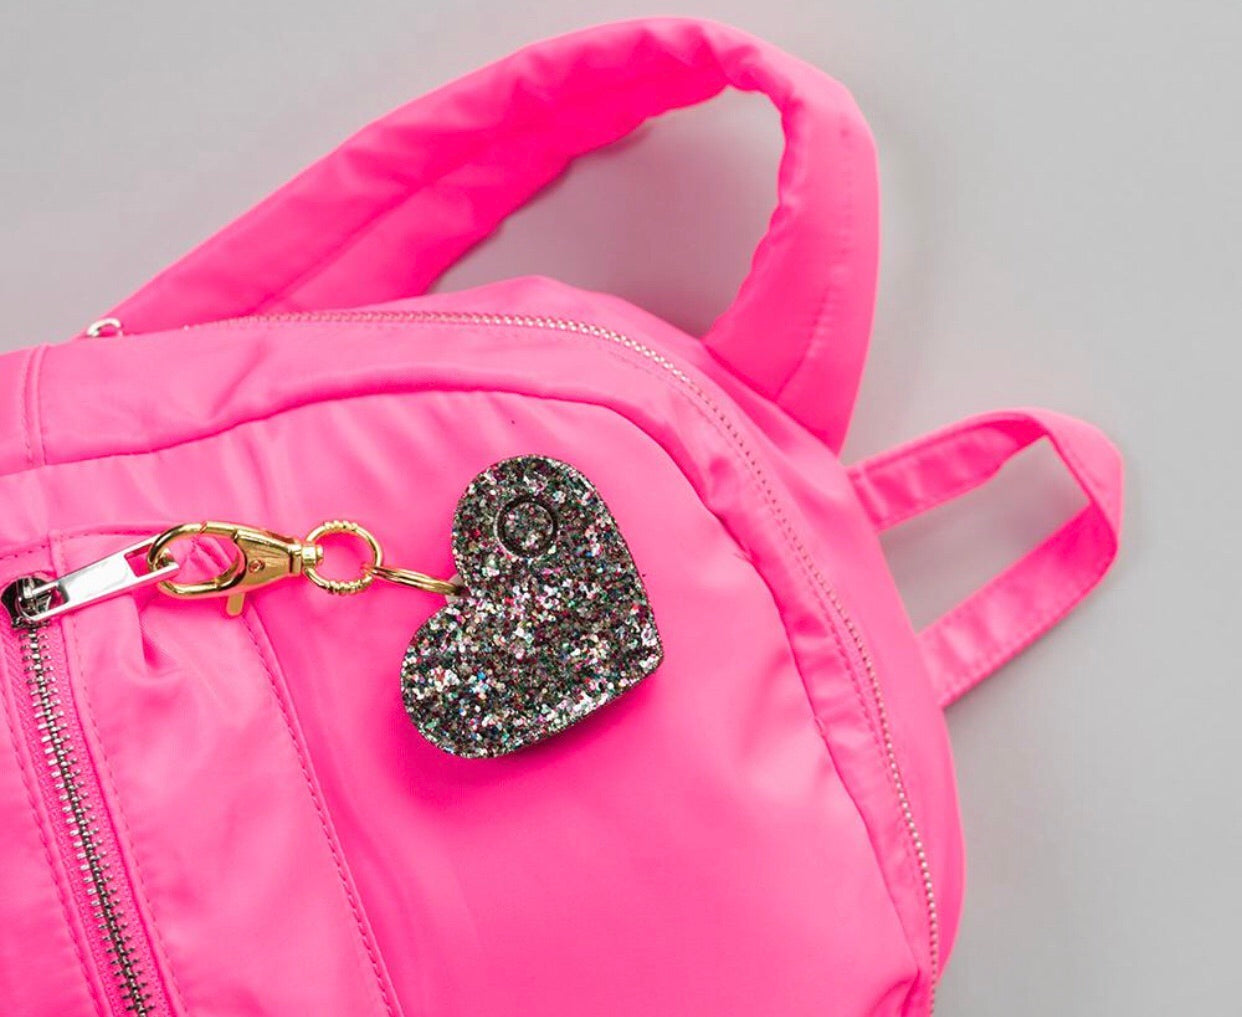 confetti heart alarm can clip on to your purse, book bag, etc